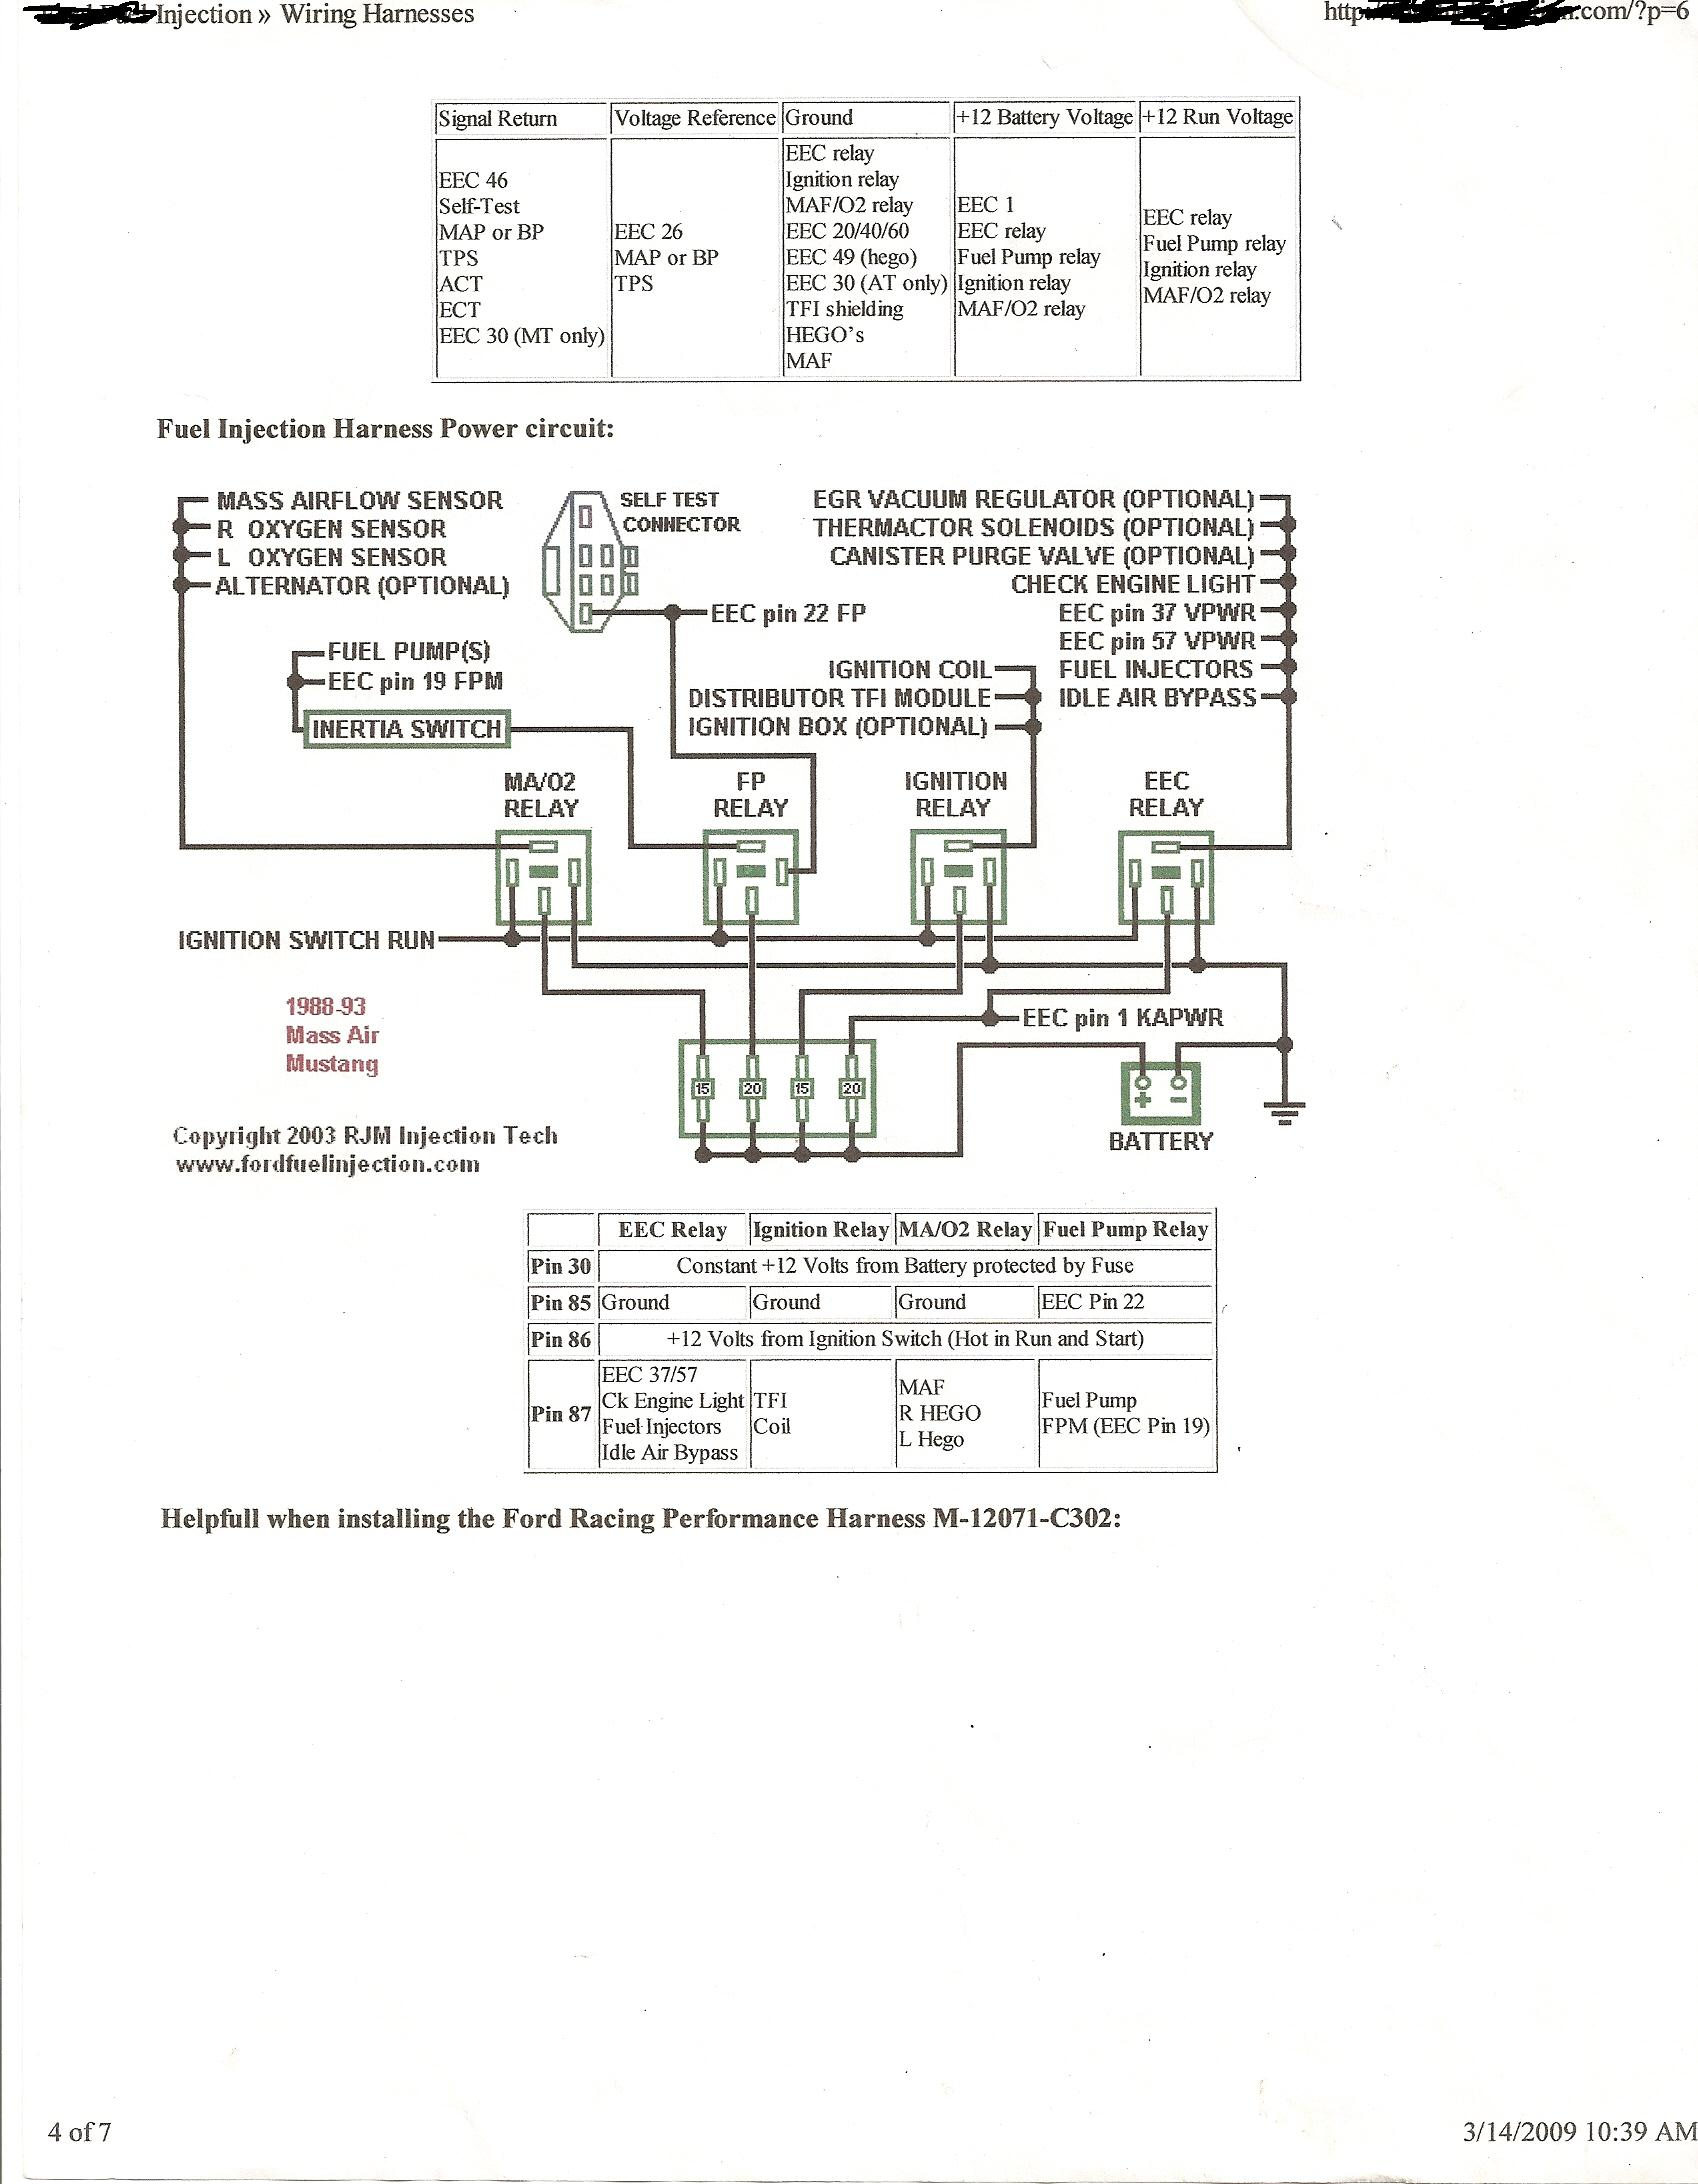 scan0008 efi computer pin out diagram classicbroncos com forums rjm wiring harness at cos-gaming.co